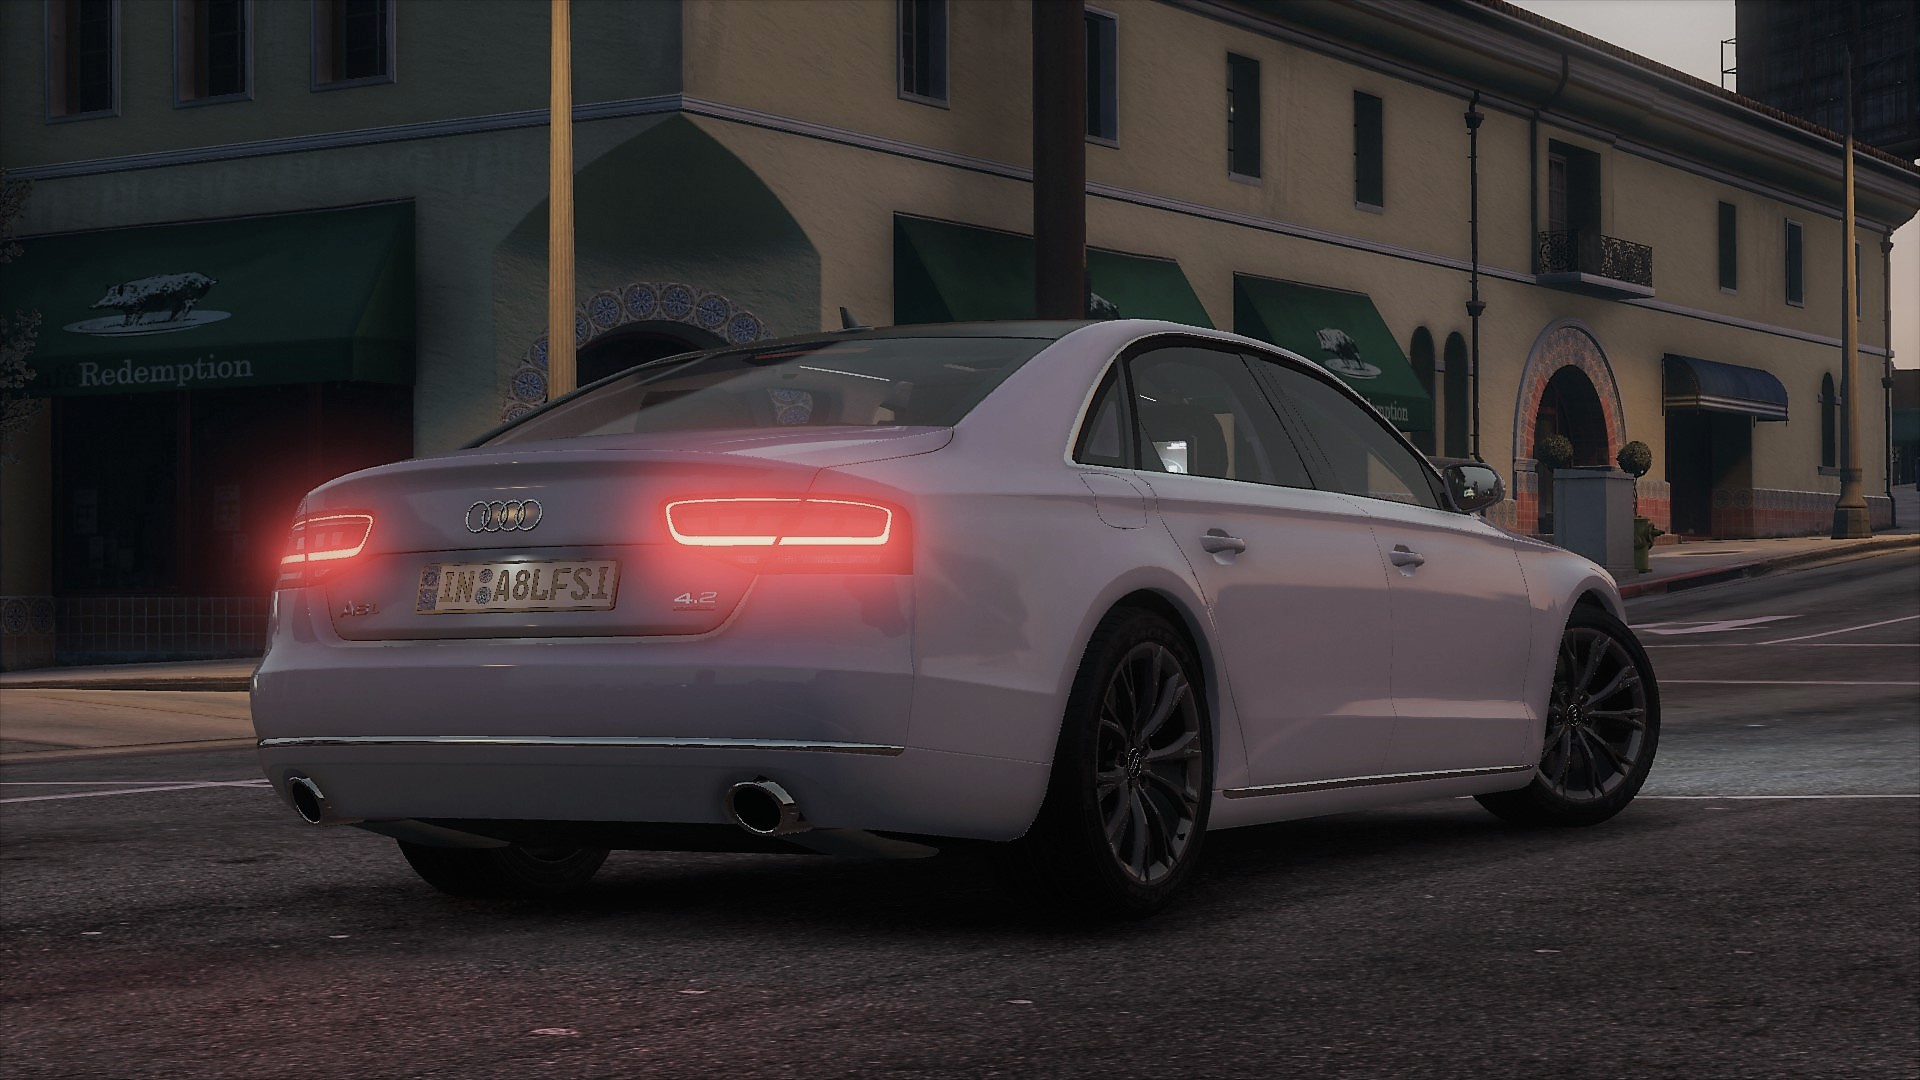 2010 audi a8 l 4 2 fsi quattro d4 add on tuning gta5. Black Bedroom Furniture Sets. Home Design Ideas